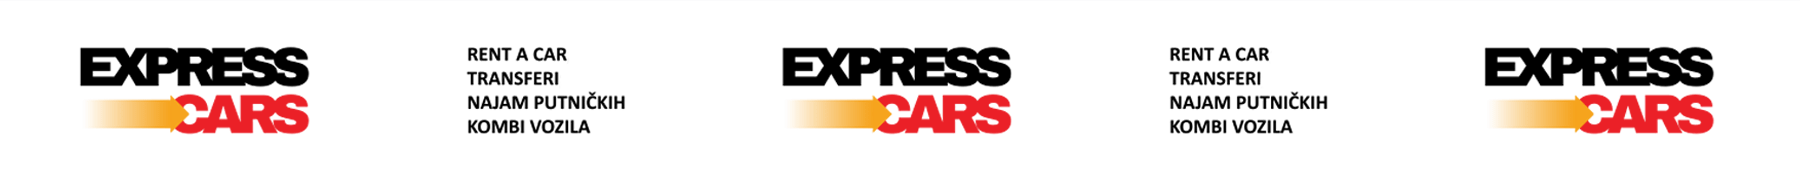 Express cars banner transparentni